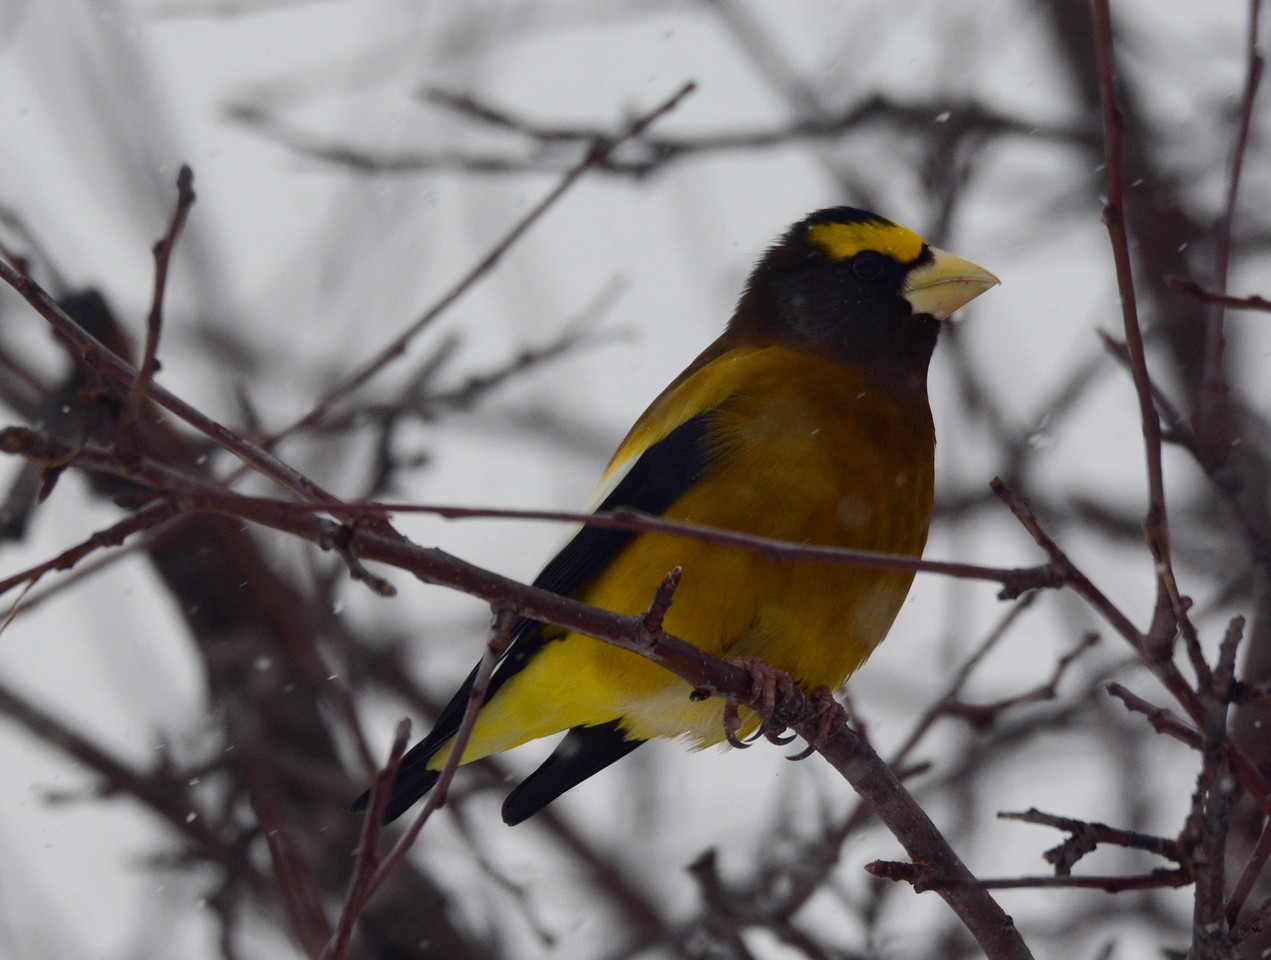 Evening Grosbeak (m) -- Coccothraustes vespertinus